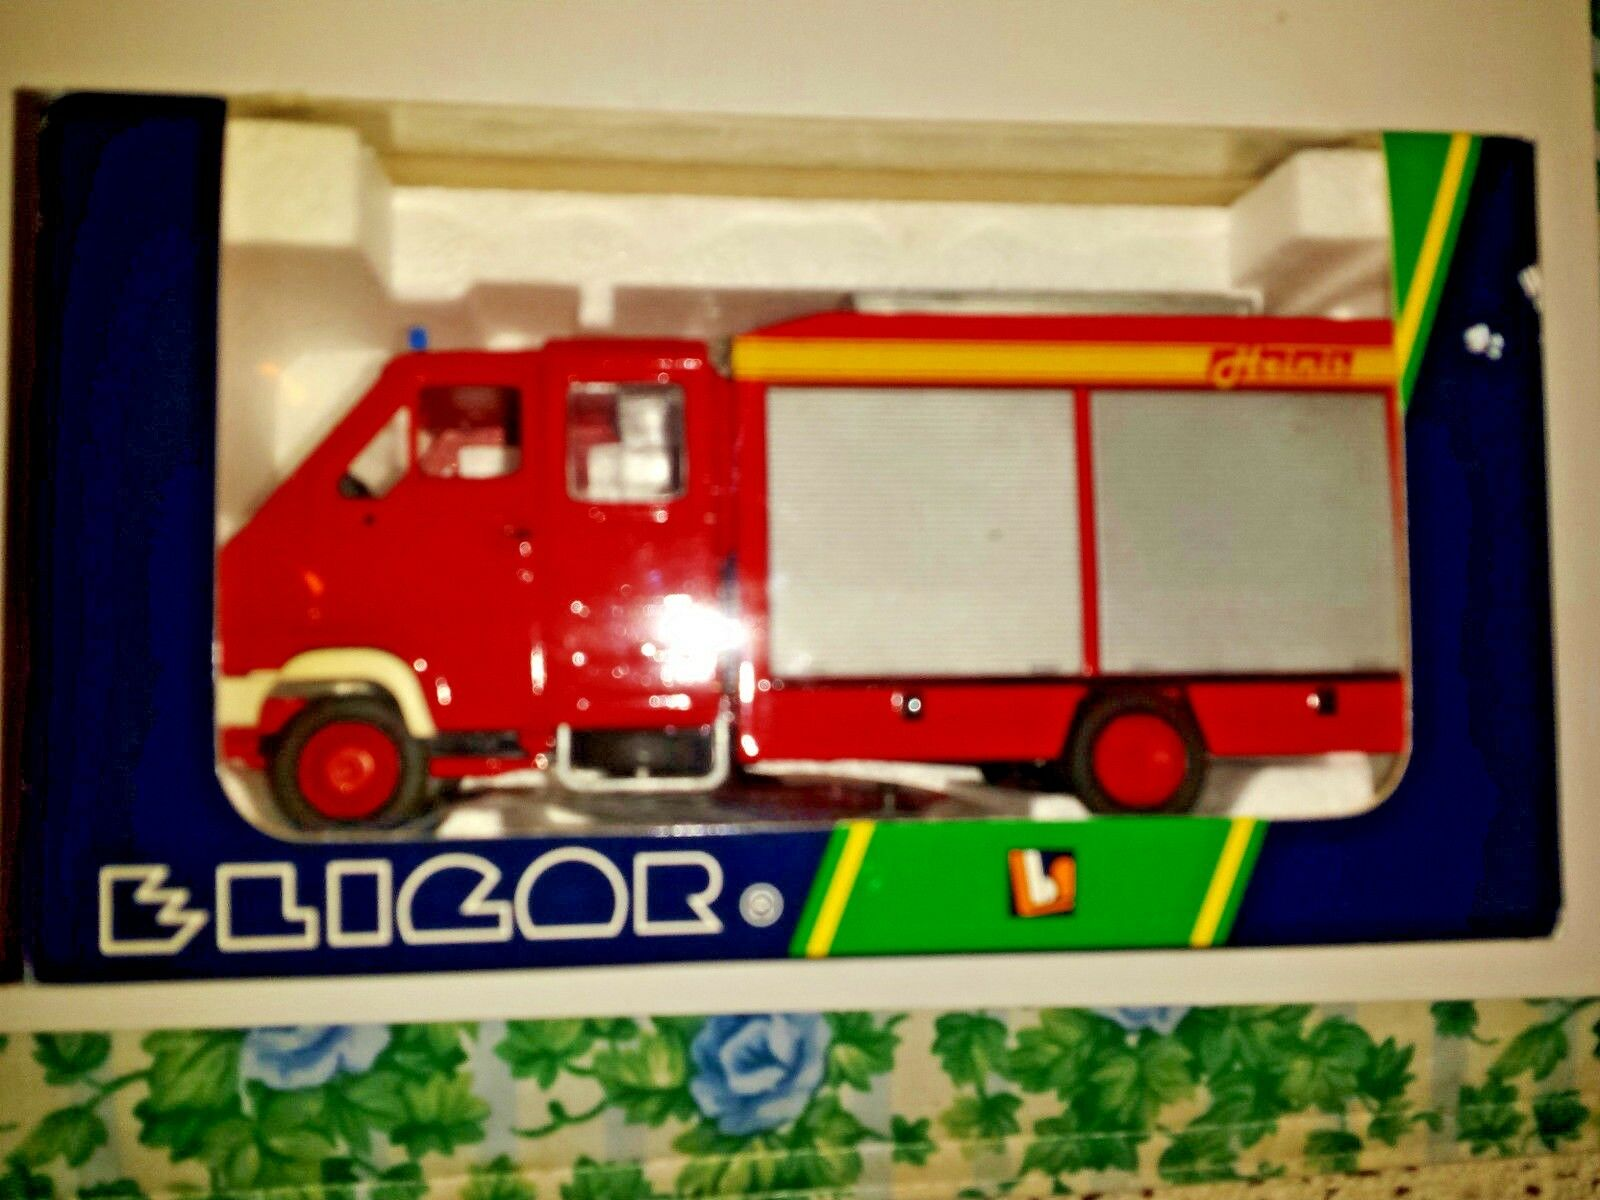 Elicor Renault B120 Double Cabine Heinis 1 43 Scale Die Cast Surber 1421